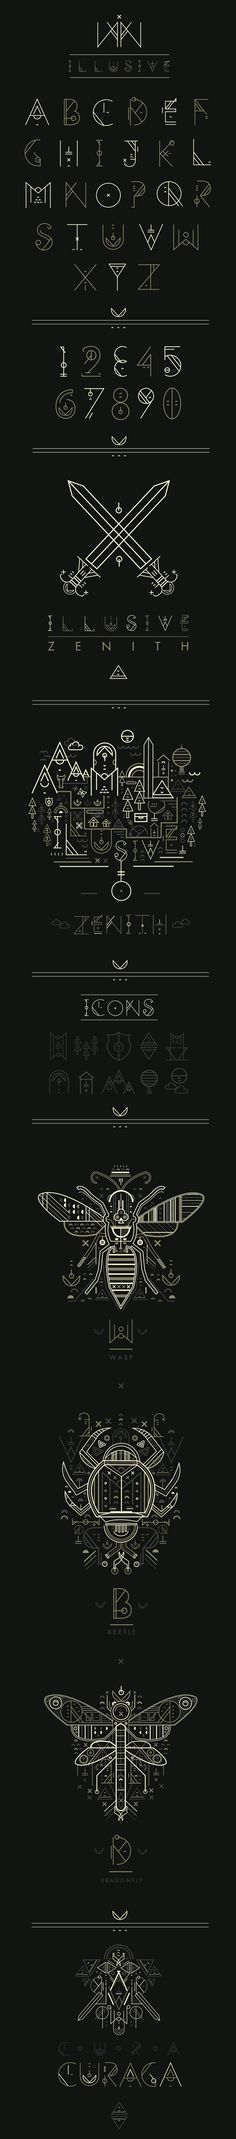 Illusive Typeface by Petros Afshar, via Behance